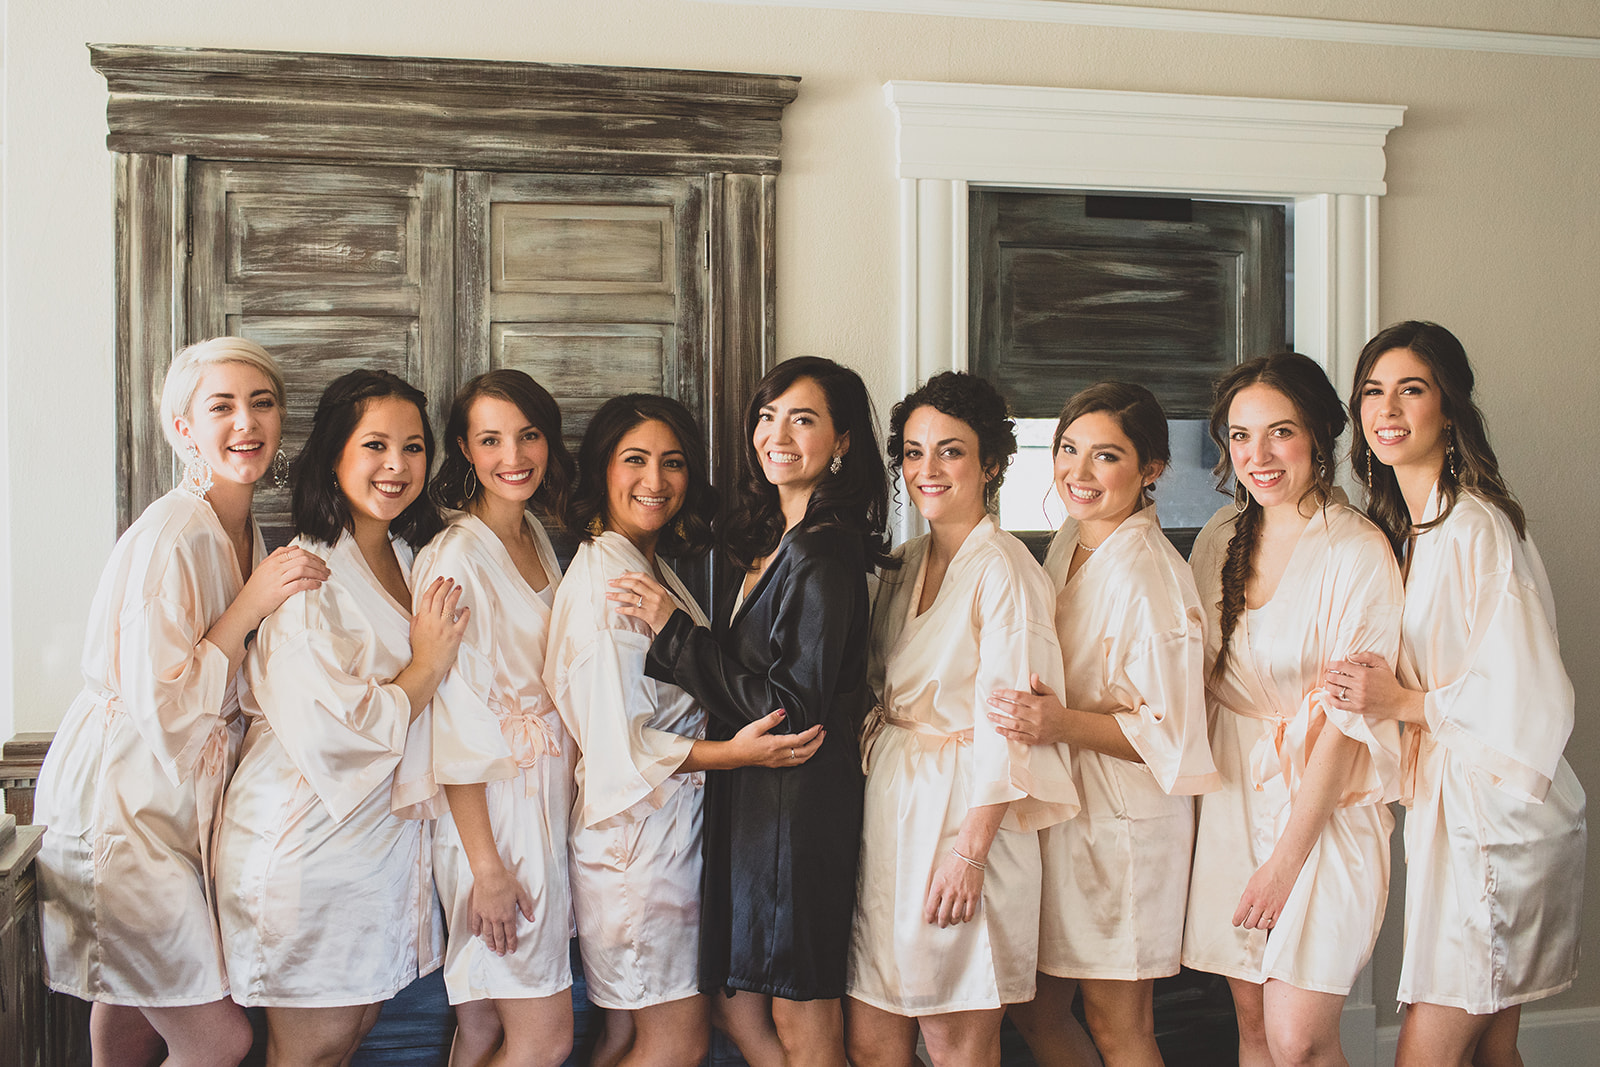 seattleweddingbridesmaids